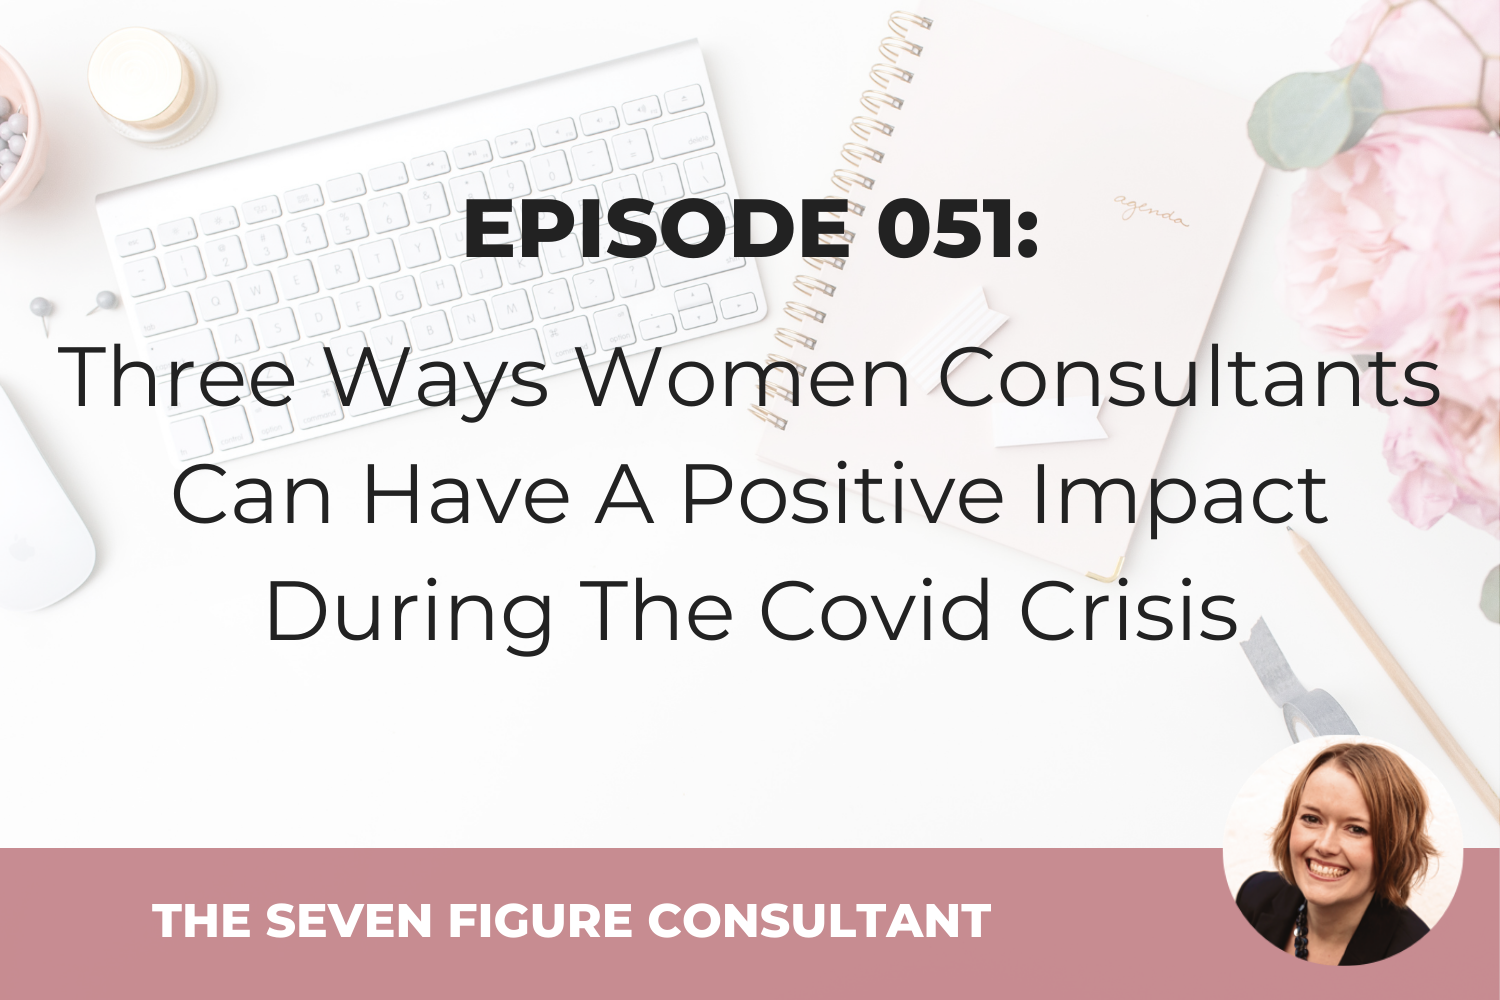 Episode 051: Three Ways Women Consultants Can Have A Positive Impact During The Covid Crisis